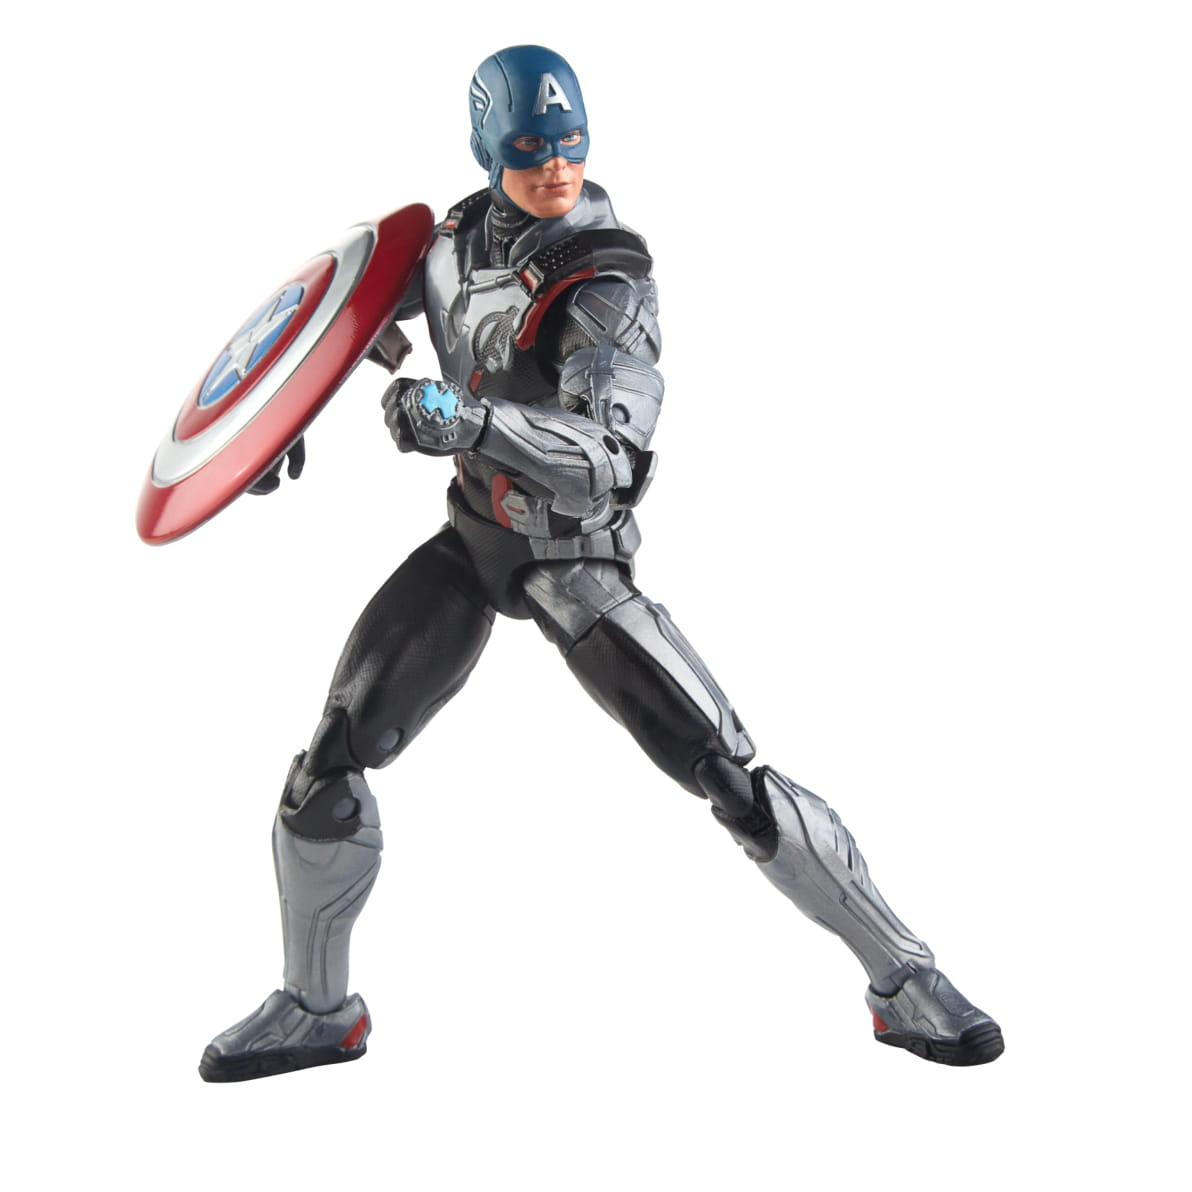 Avengers EndGame Suited Captain America Marvel Legends Figure by Hasbro